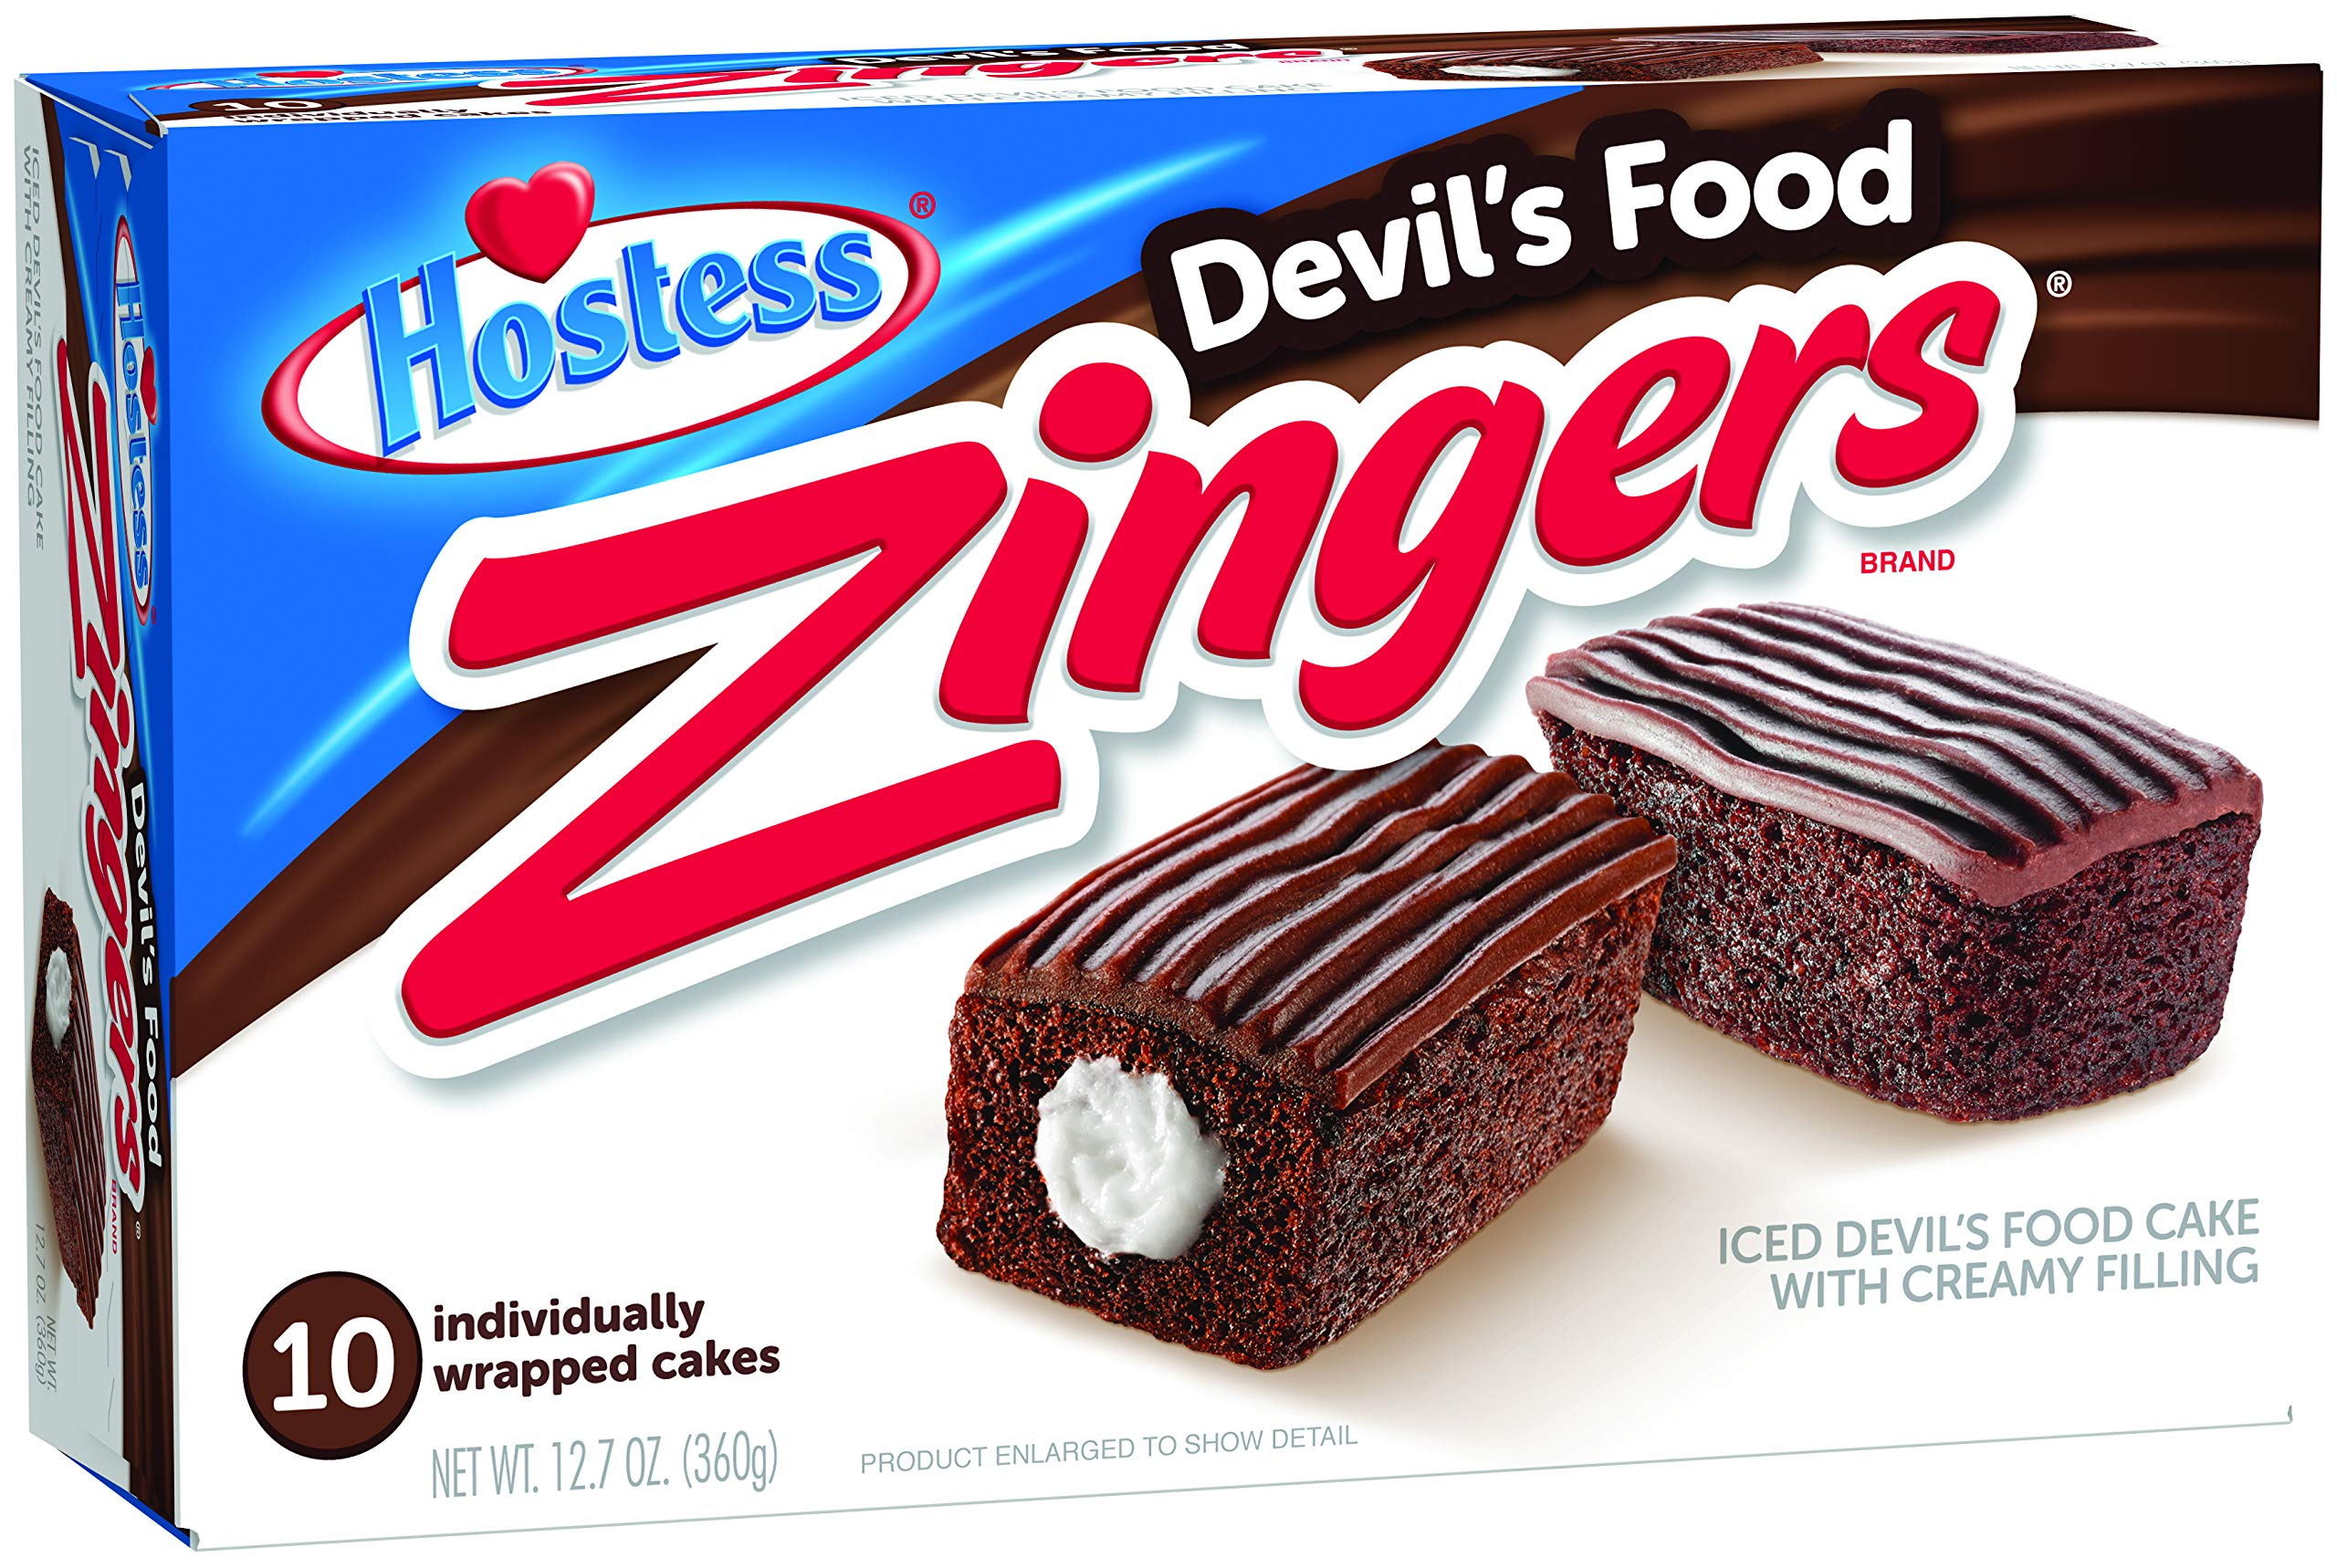 Hostess Zingers, Devil's Food, 10 Count (Pack of 6) by Hostess